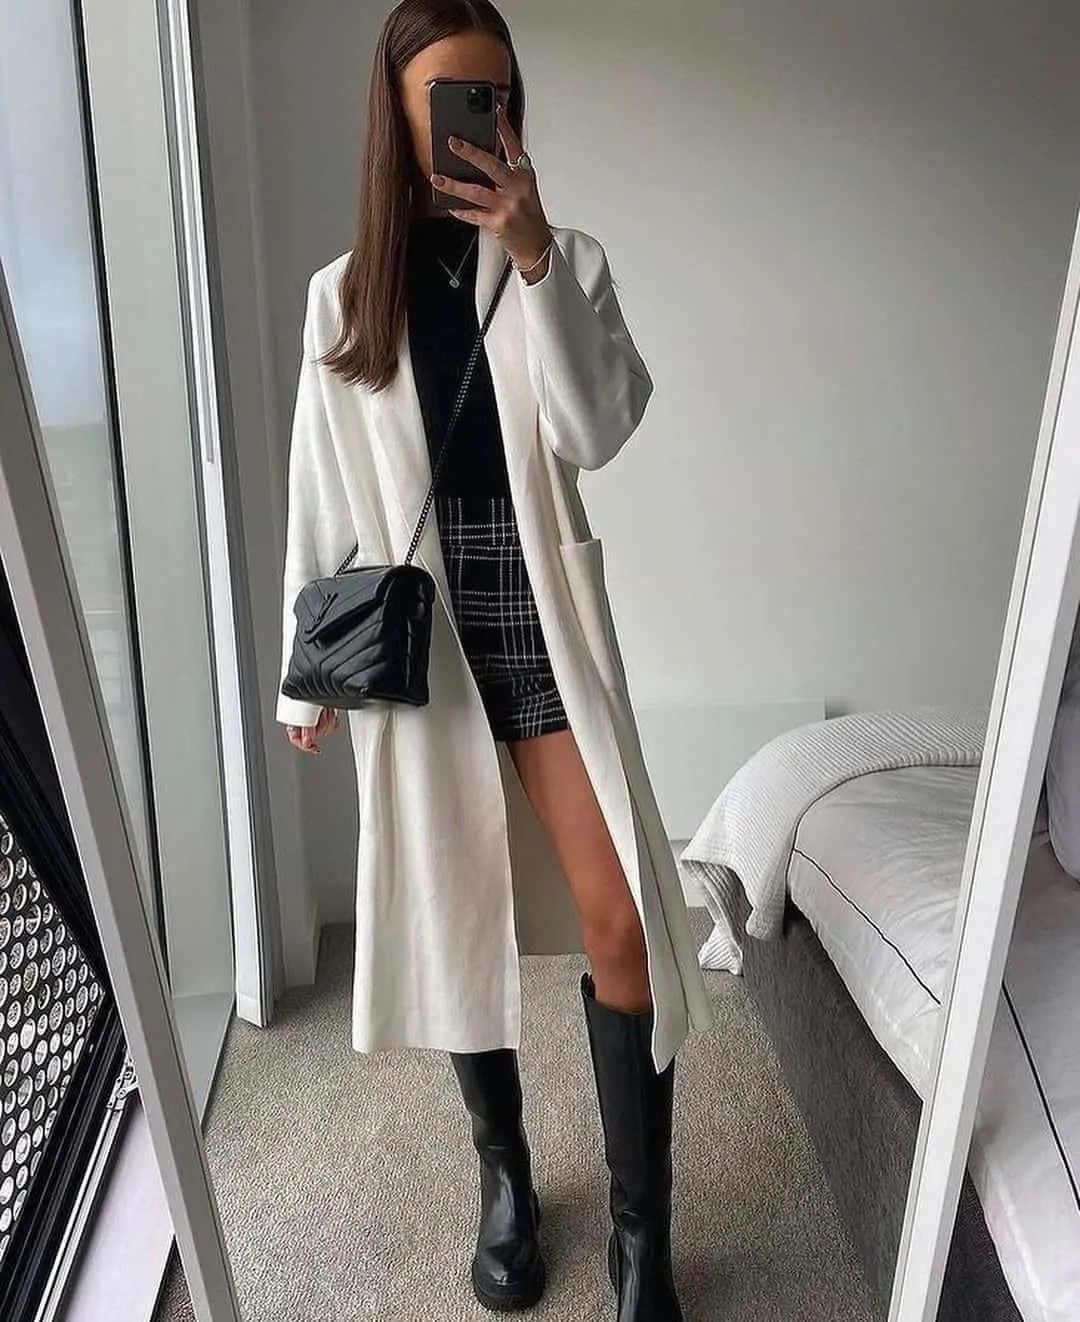 100+ fashion inspo outfits that you have to see no matter what your style is 35